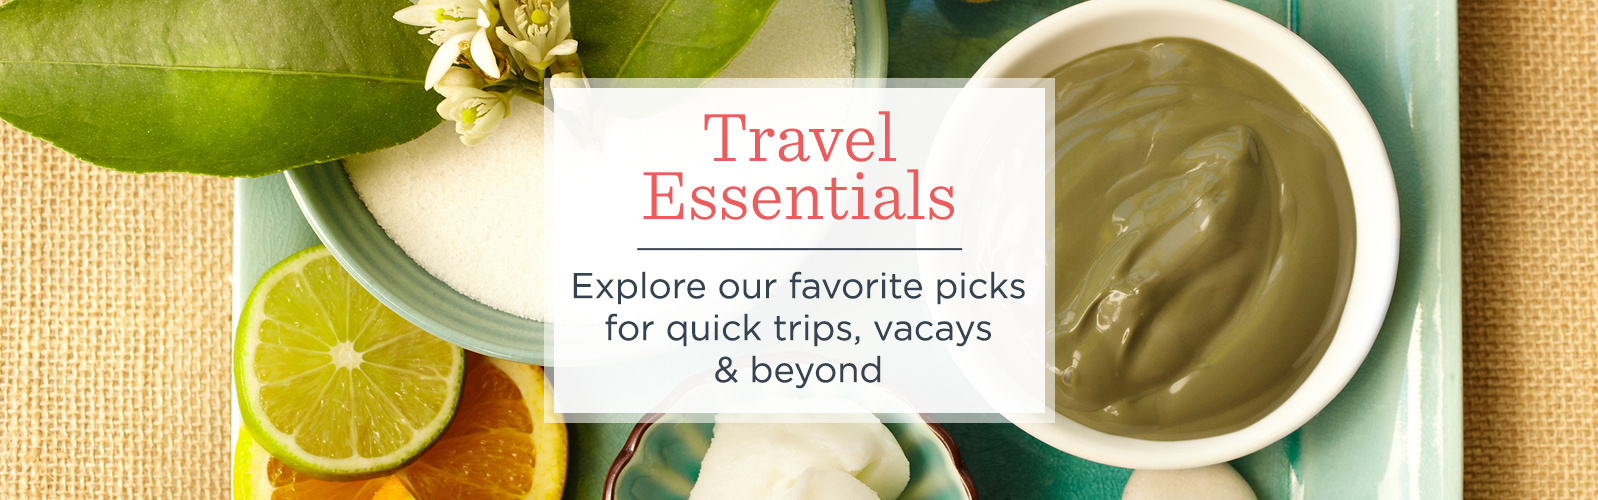 Travel Essentials. Explore our favorite picks for quick trips, vacays & beyond